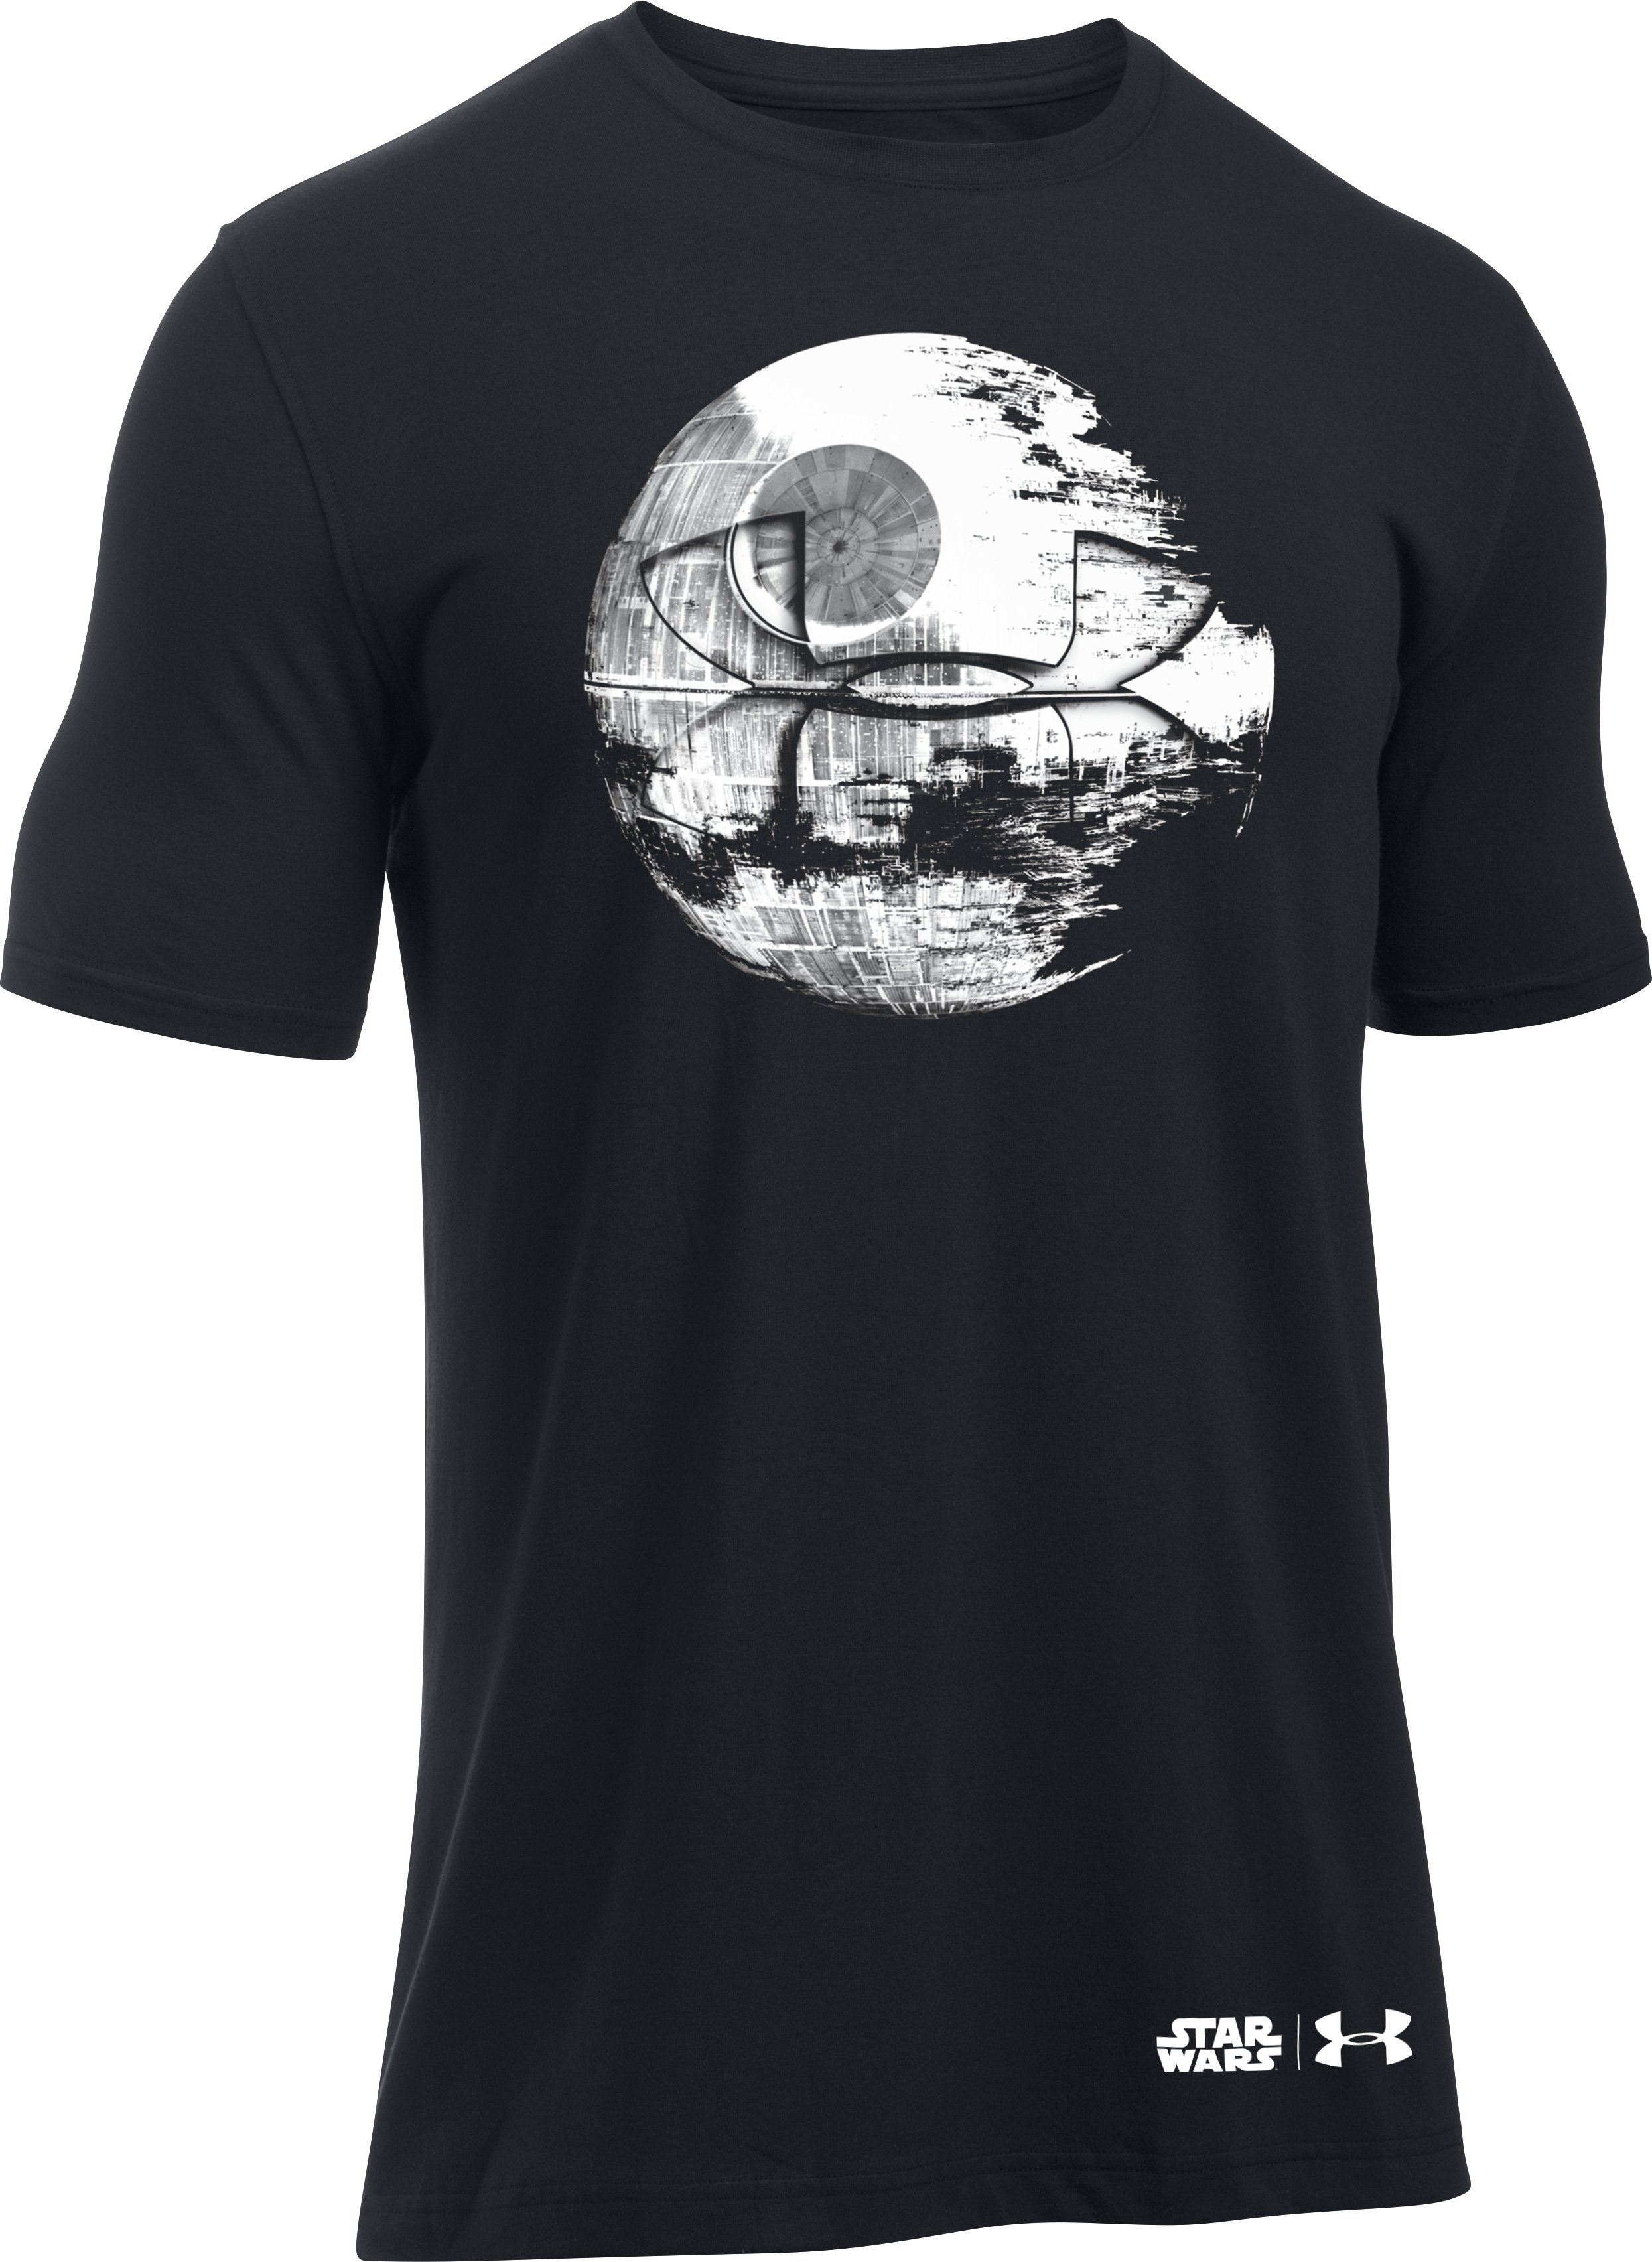 Men's Star Wars Death Star T-Shirt, Black , undefined